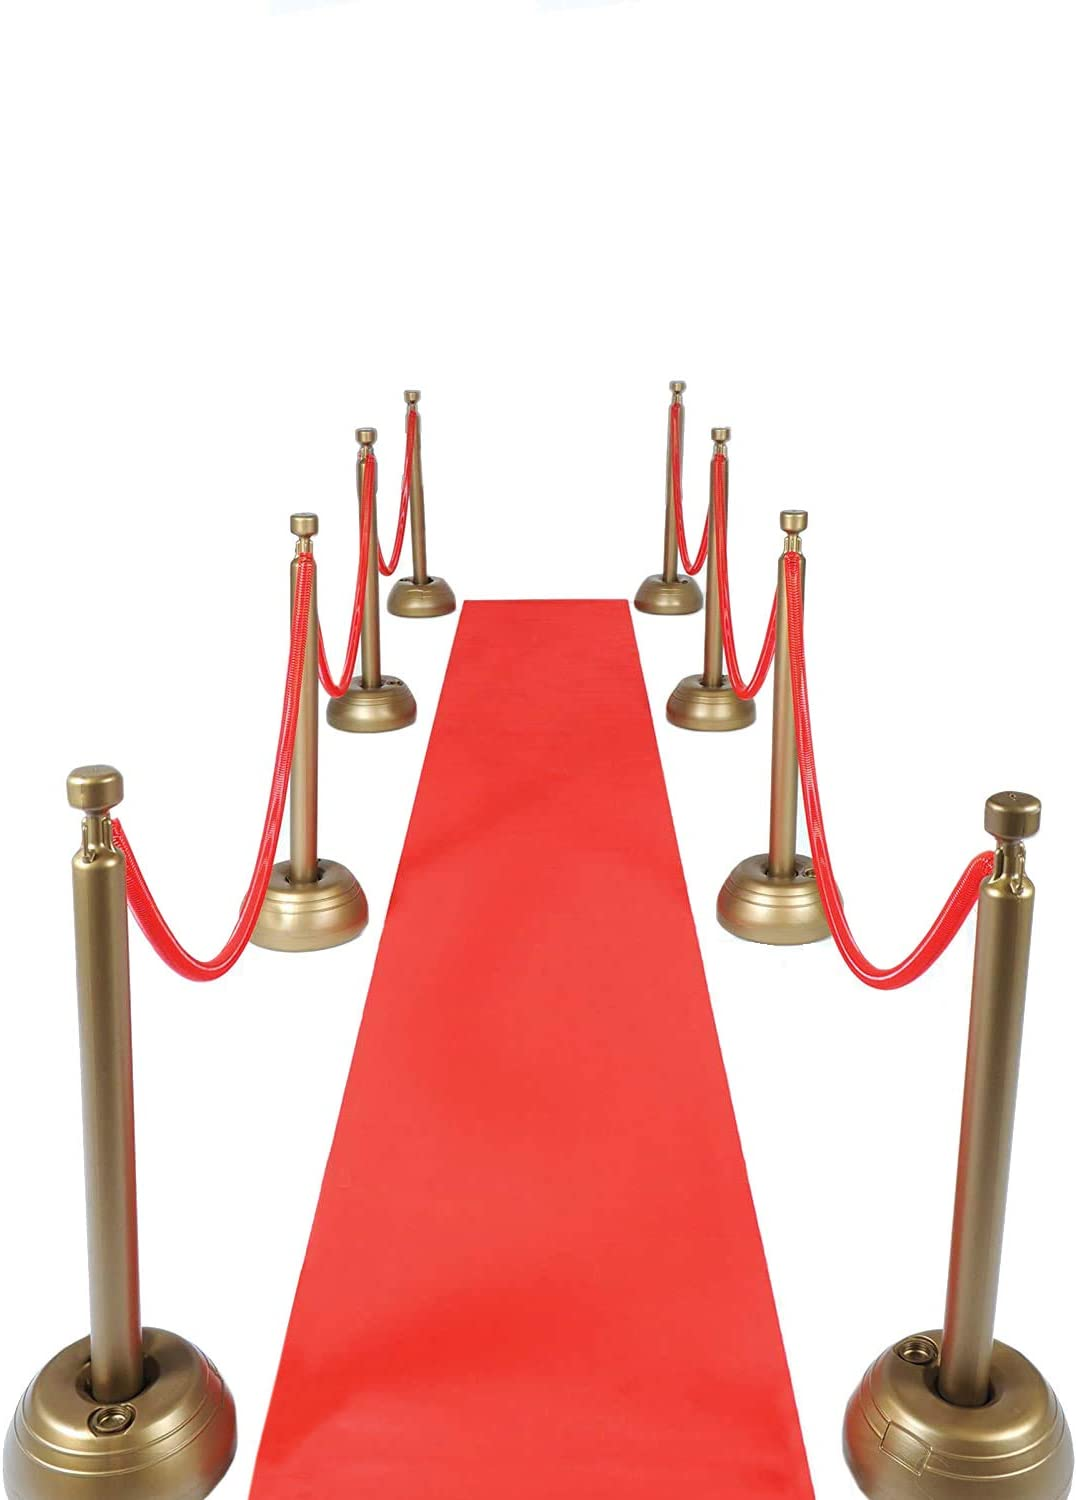 Red Carpet Aisle Runner 24 in × 15 ft Walkway Carpet Floor Aisle Runner for Indoor Outdoor Weddings Prom Theme Party Decorations